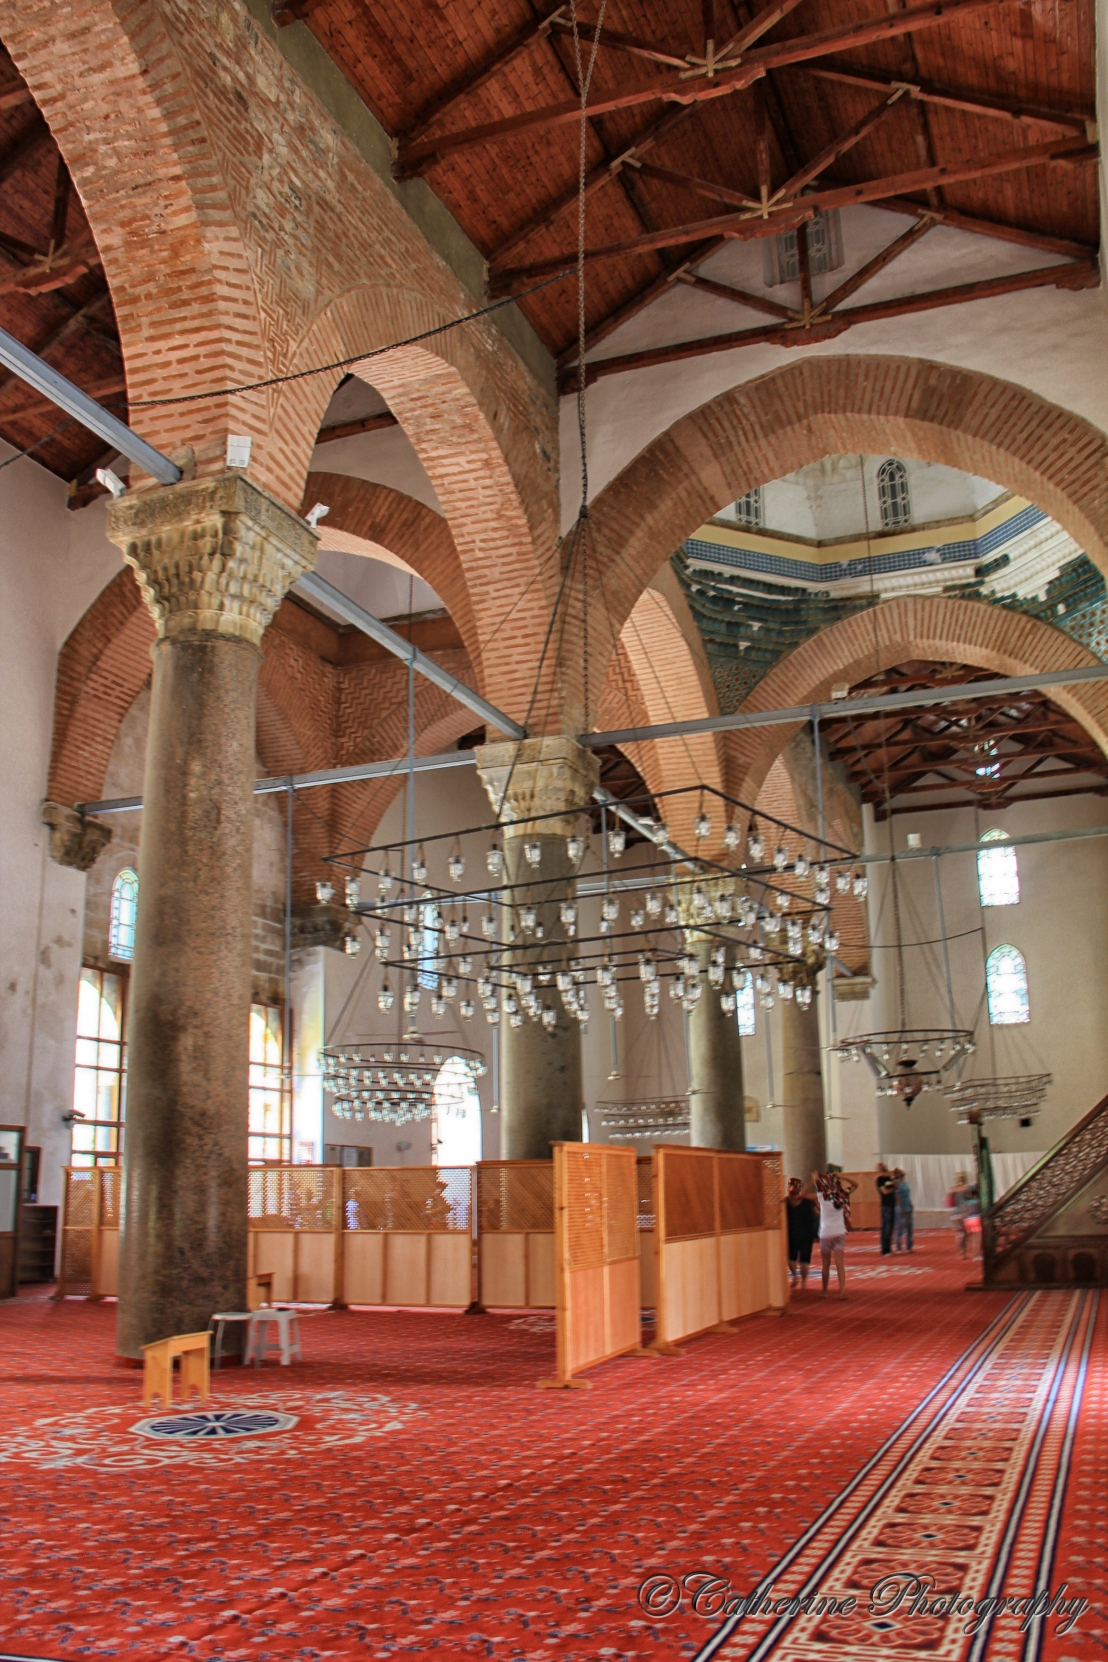 Isa Bey Mosque, Selcuk